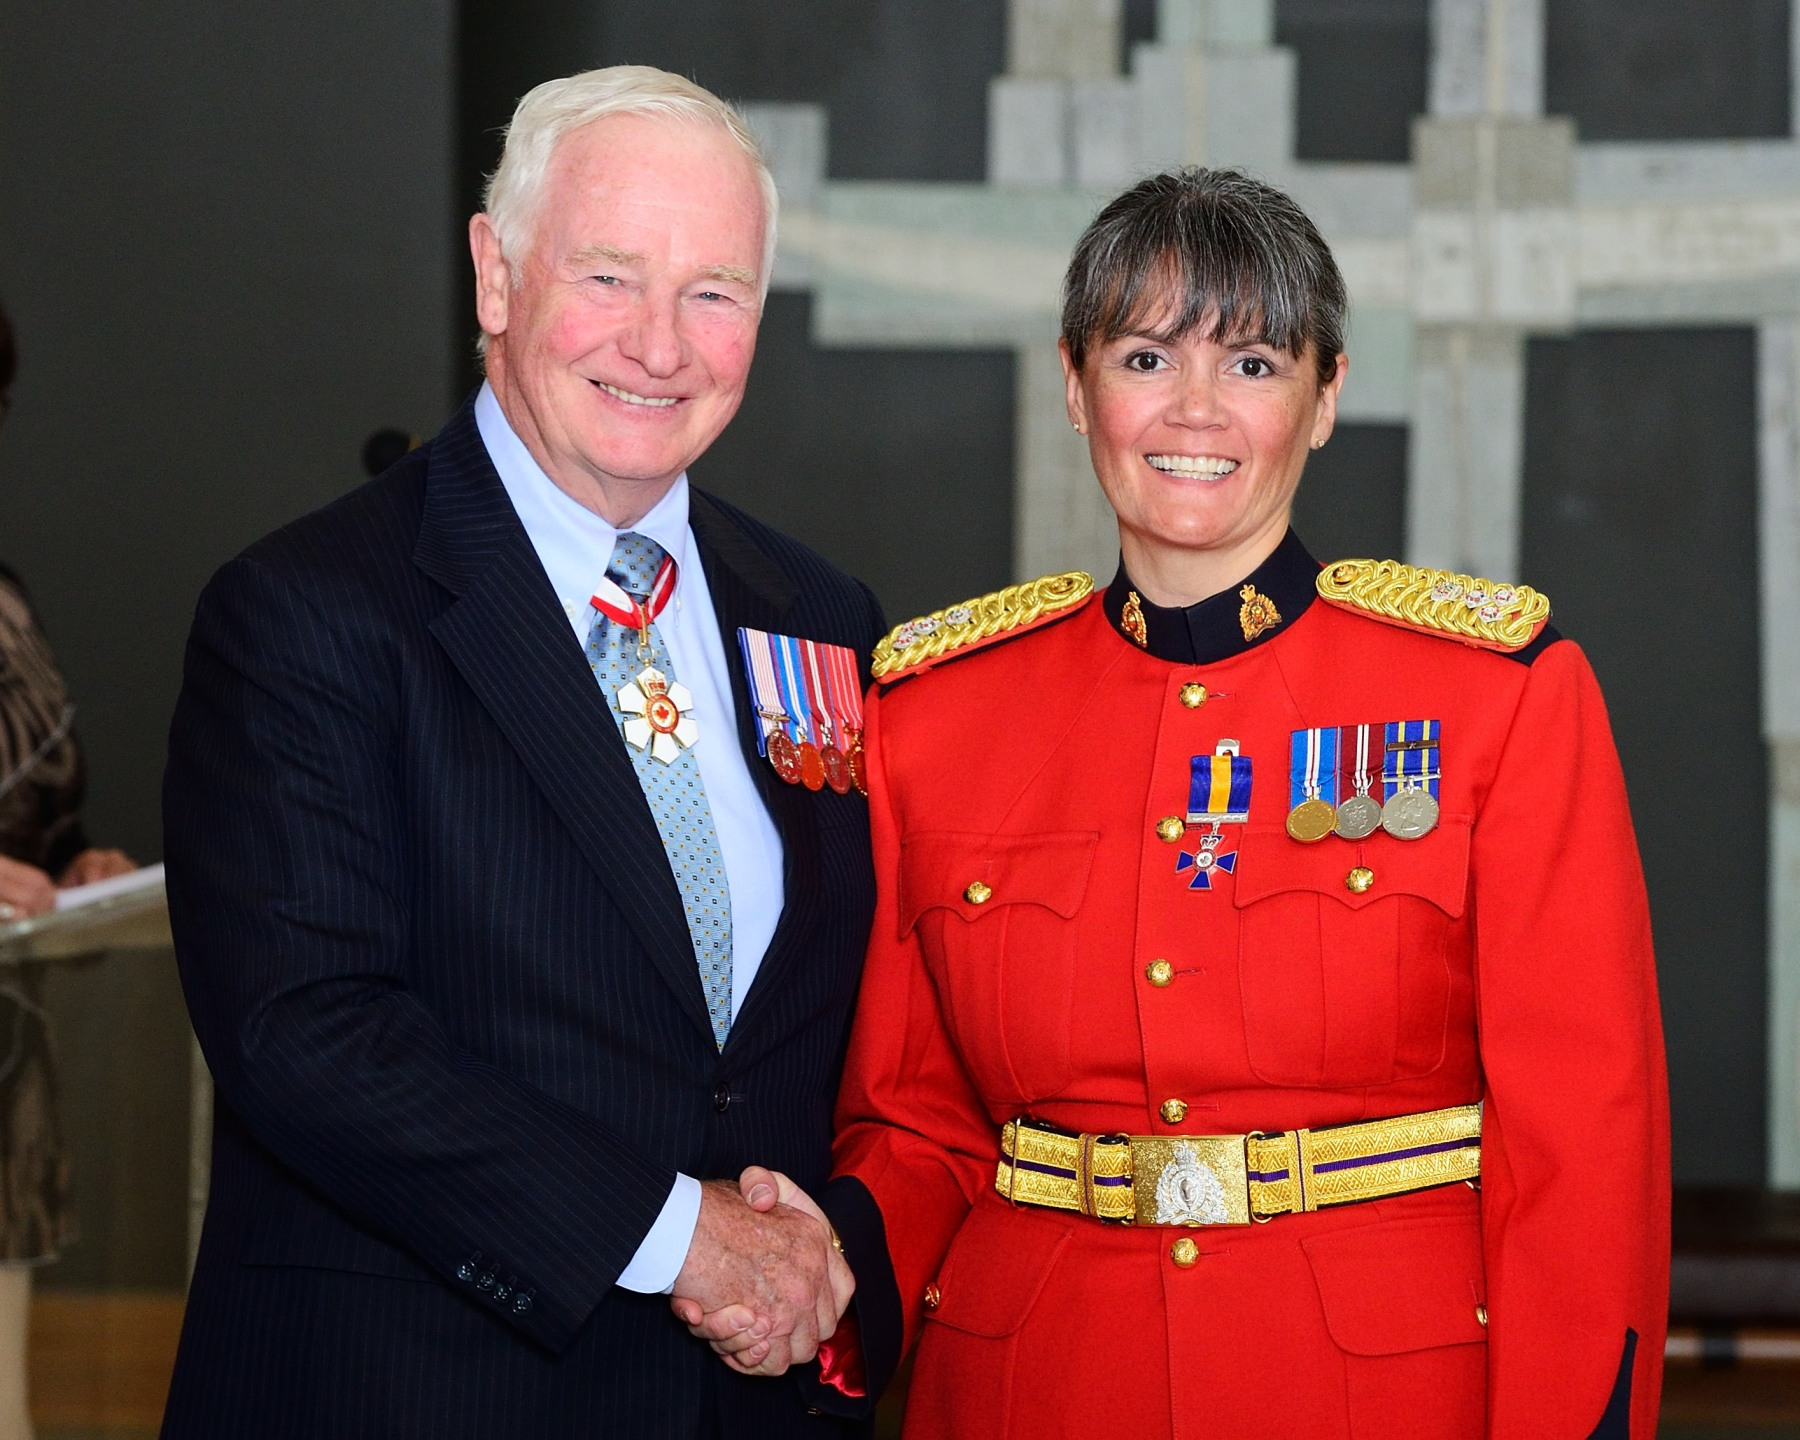 The Governor General presented the Order at the Member level to Assistant Commissioner Brenda Butterworth-Carr, M.O.M., Royal Canadian Mounted Police, Regina, Saskatchewan.